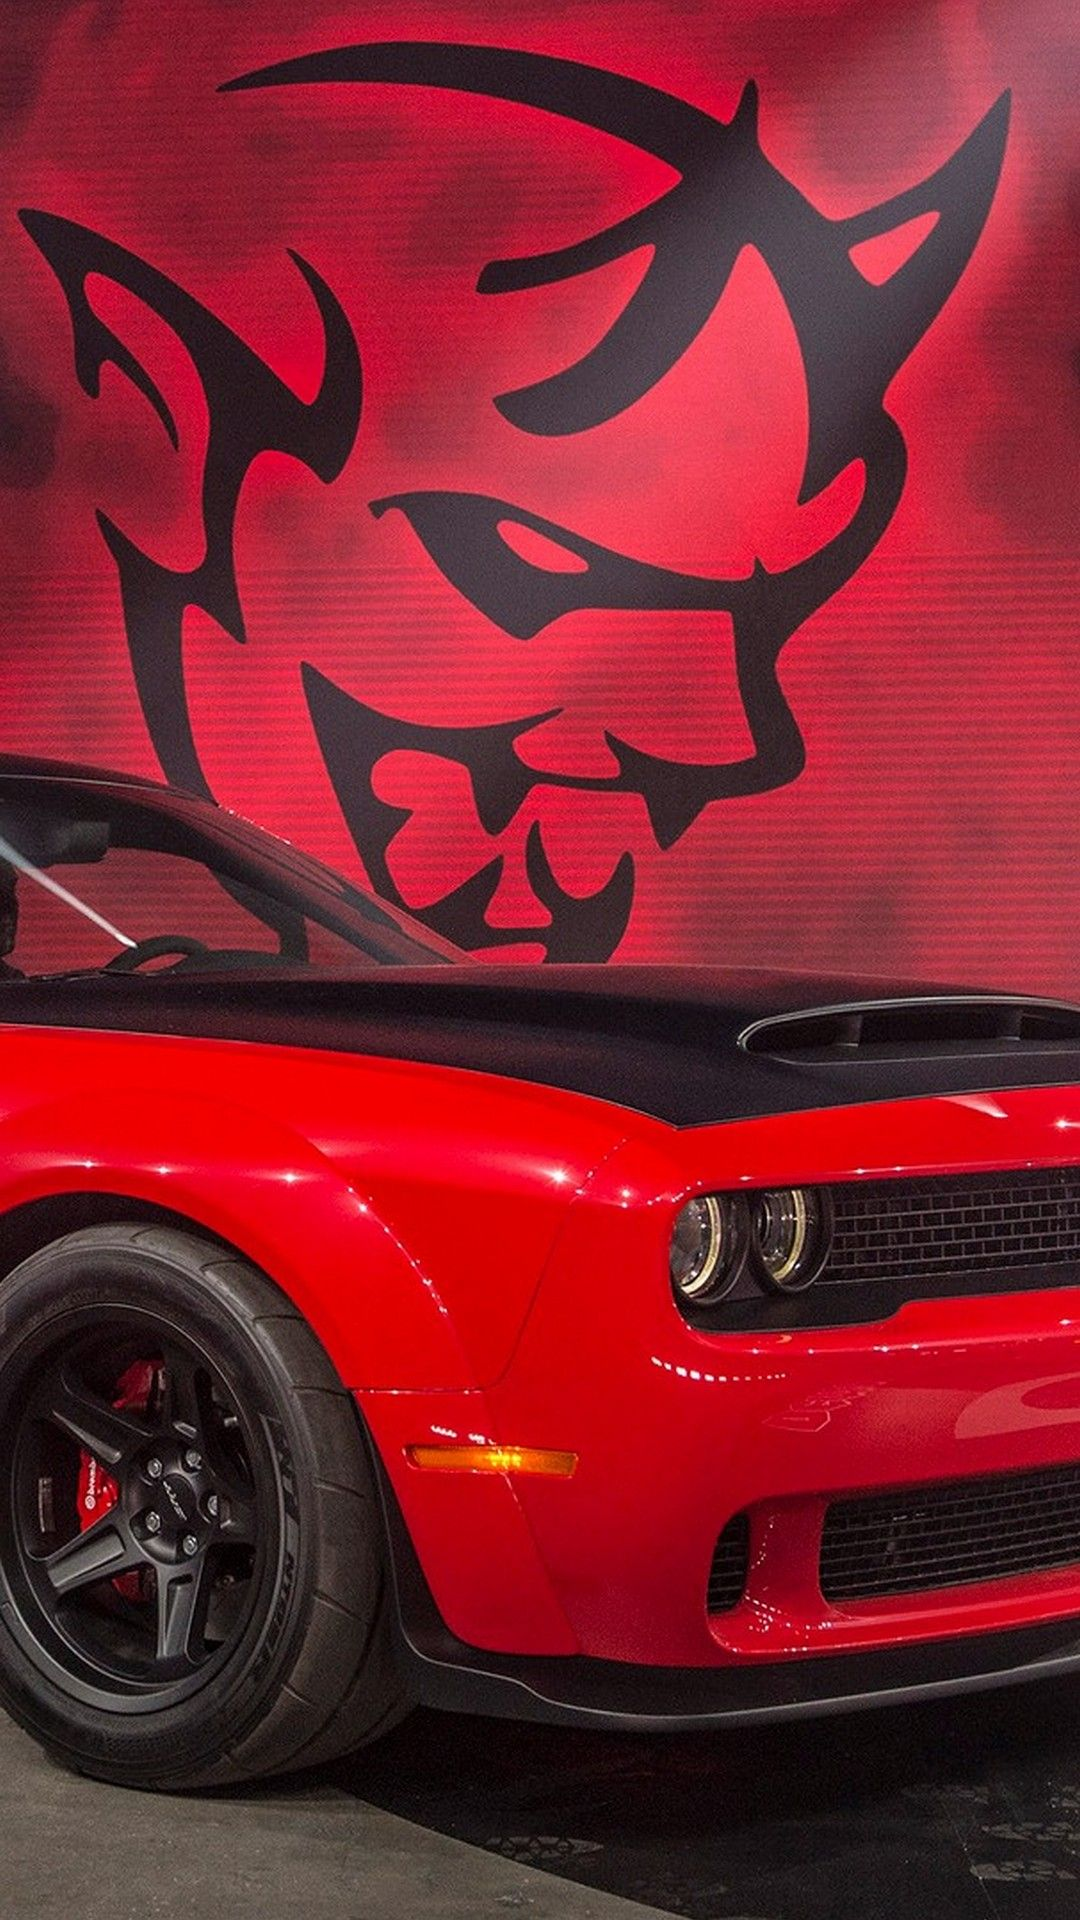 2018 Dodge Demon Iphone Wallpaper Iphonewallpapers Pinterest